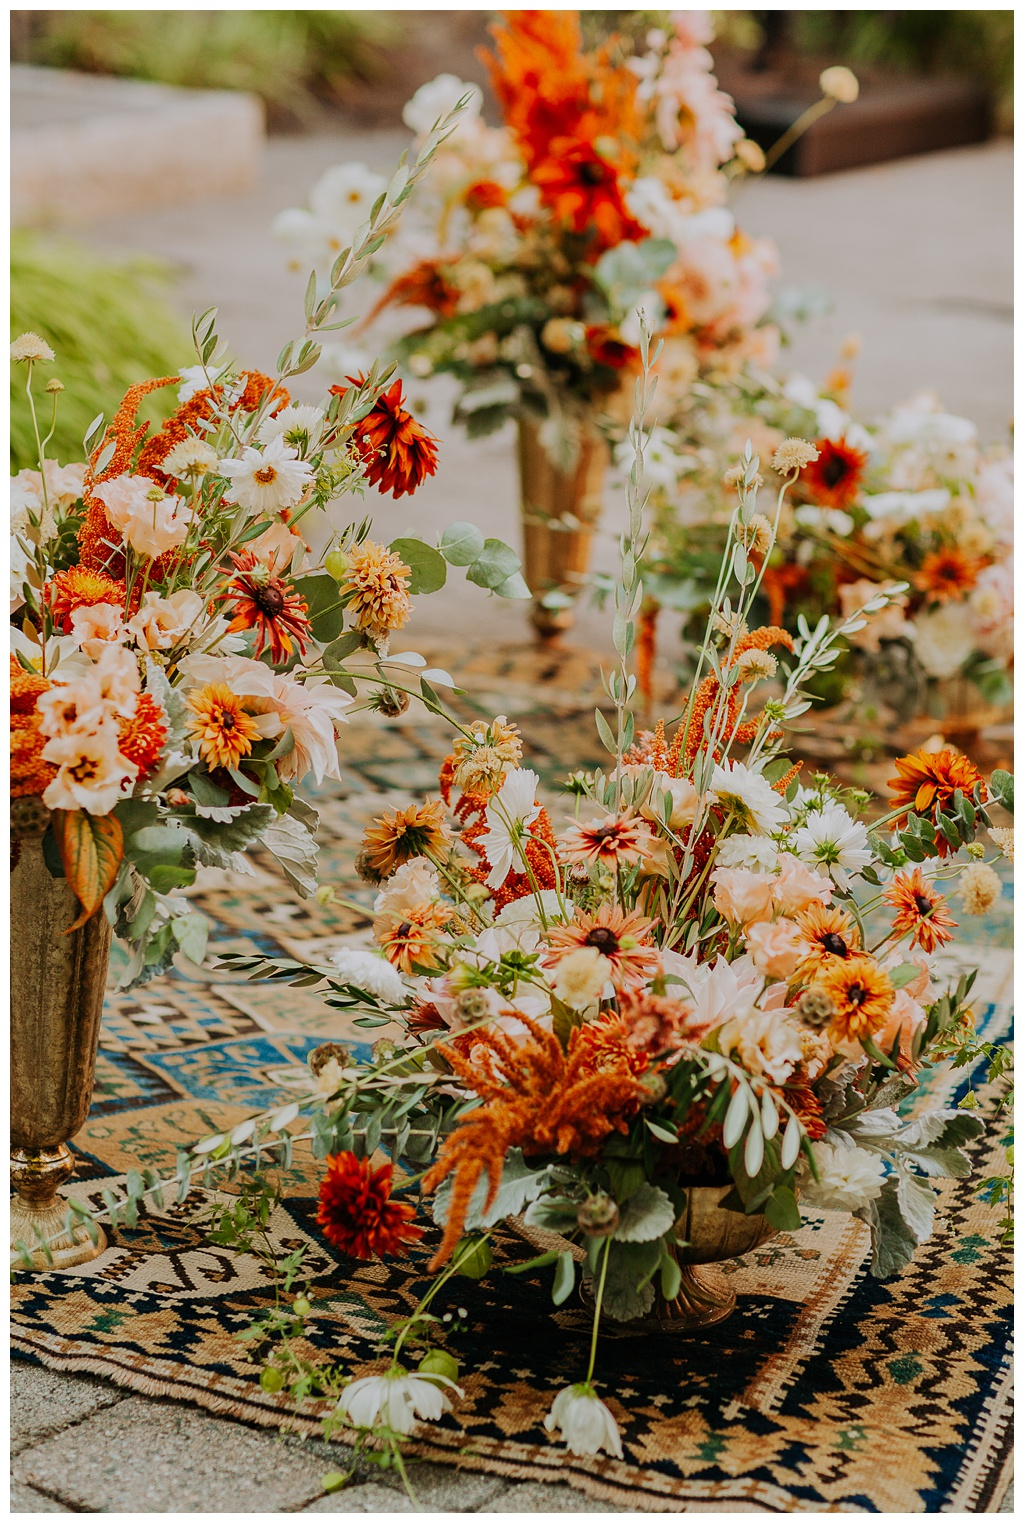 boho wedding ceremony with vintage rug and large floral urns to create an altar